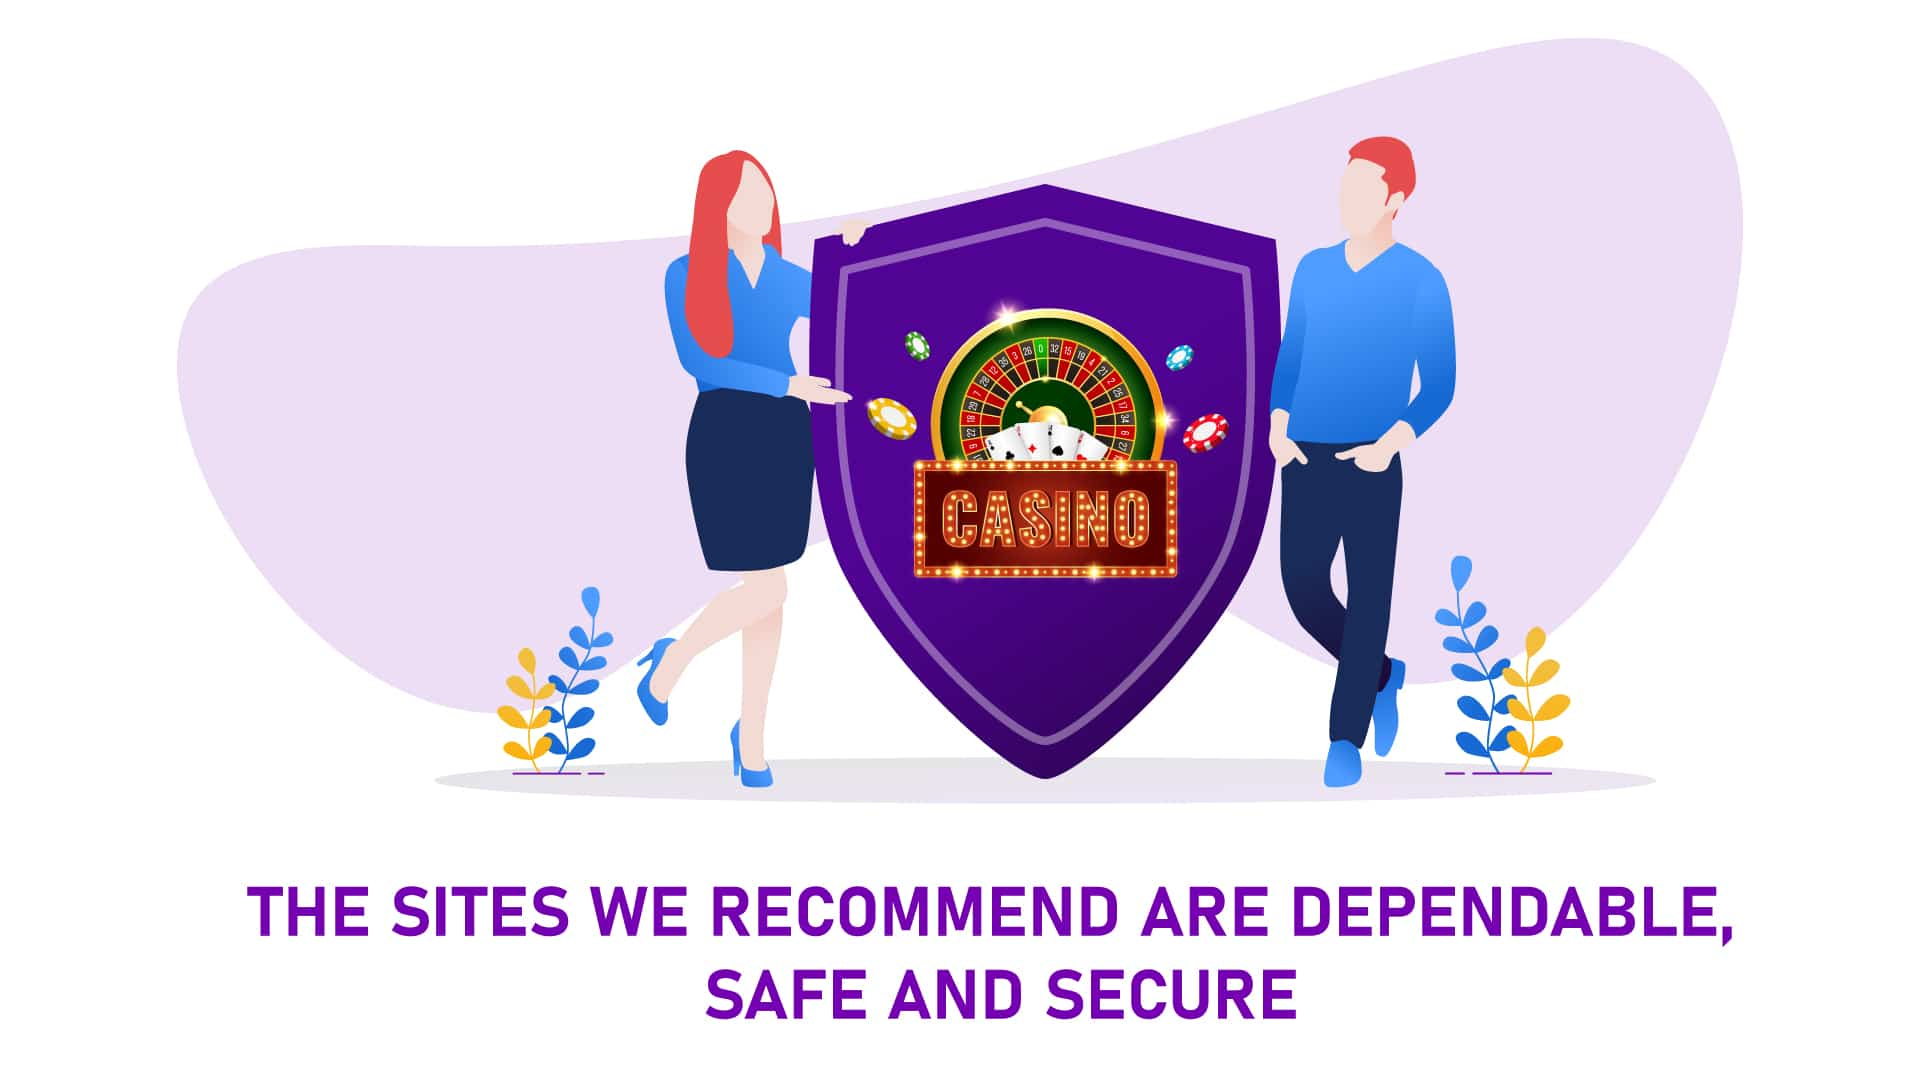 The sites we recommend are dependable, safe and secure